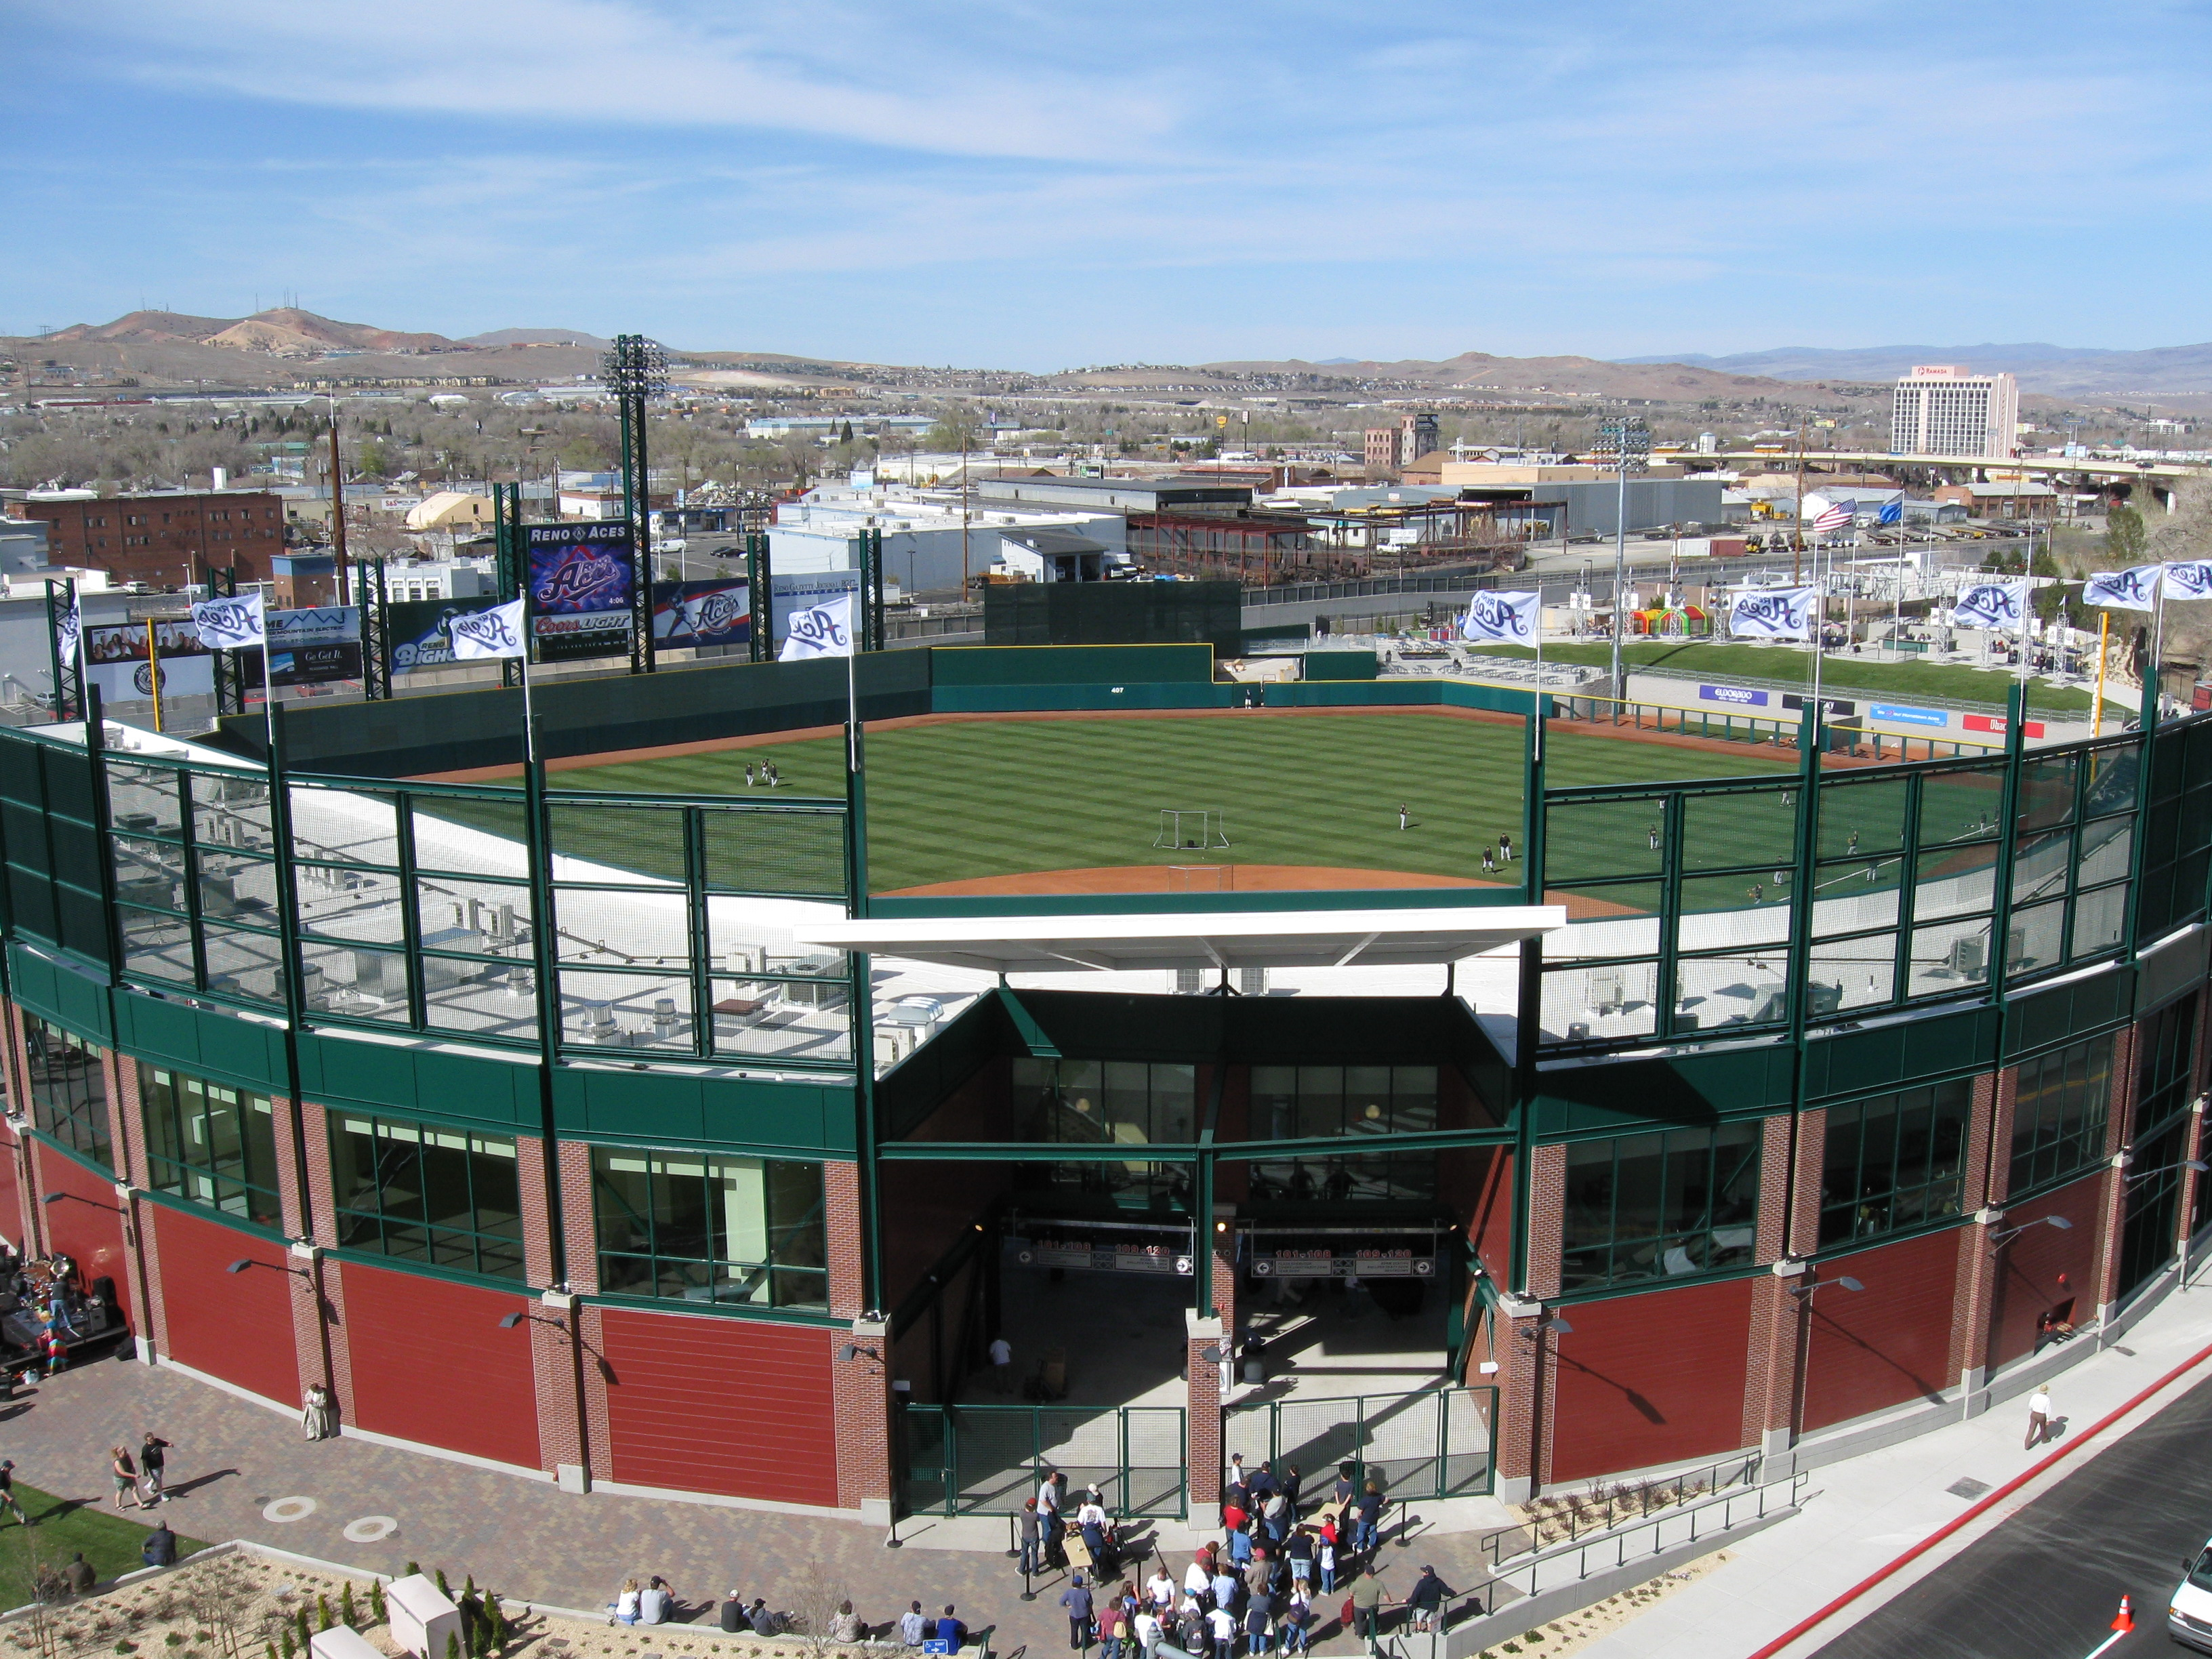 Greater Nevada Field Team Reno Aces 250 Evans Avenue Reno Nv Location Hours And Website